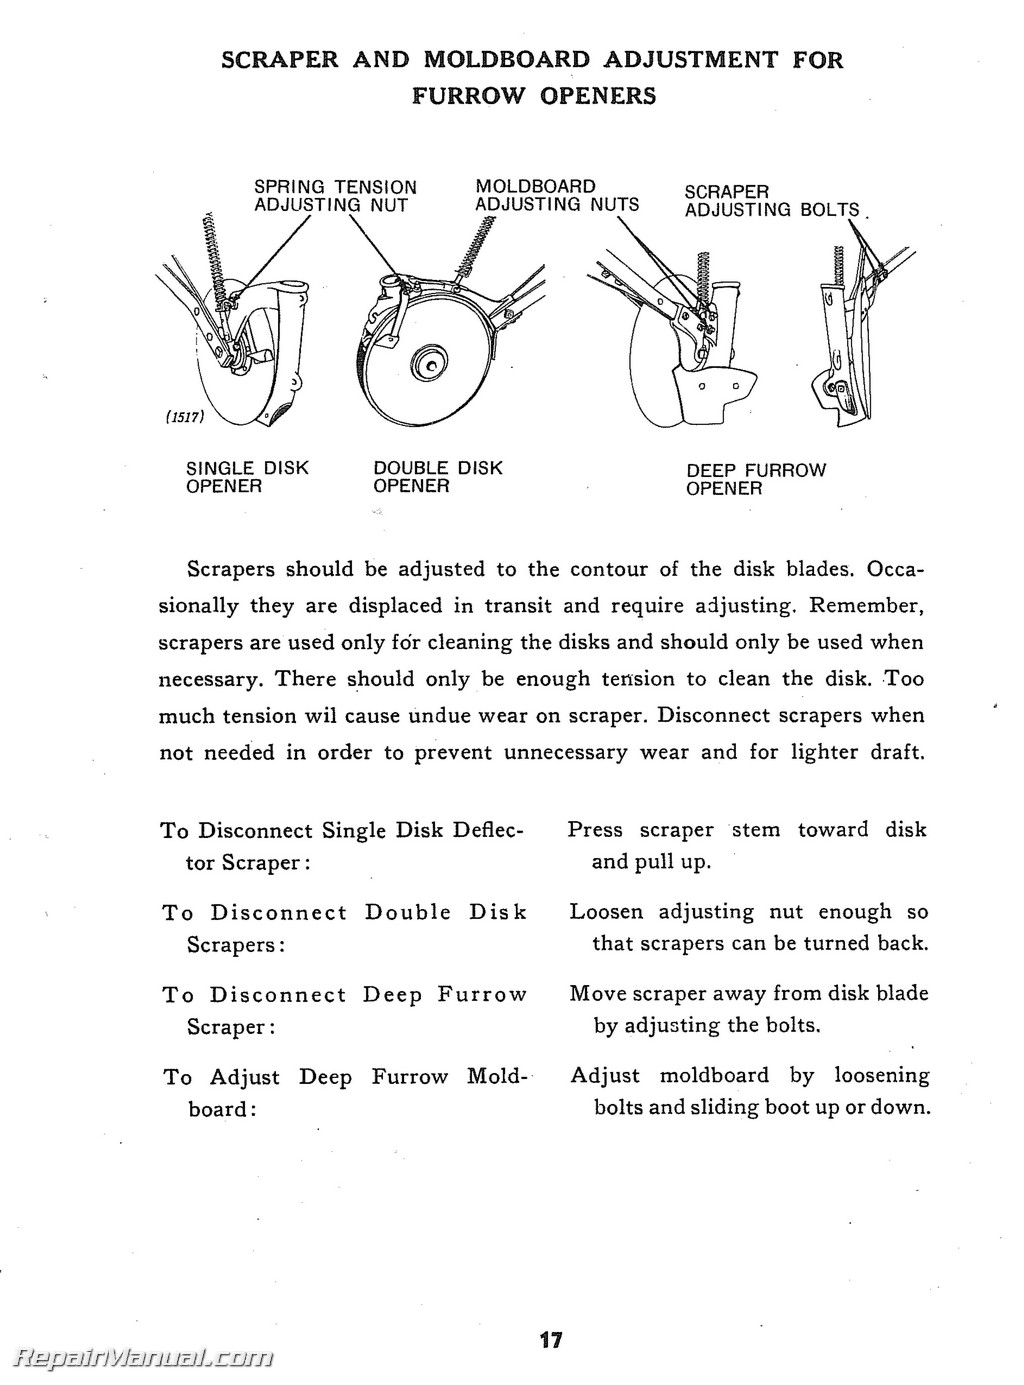 john deere van brunt model b grain drill operators manual parts manual rh repairmanual com john deere b manual download john deere model b service manual